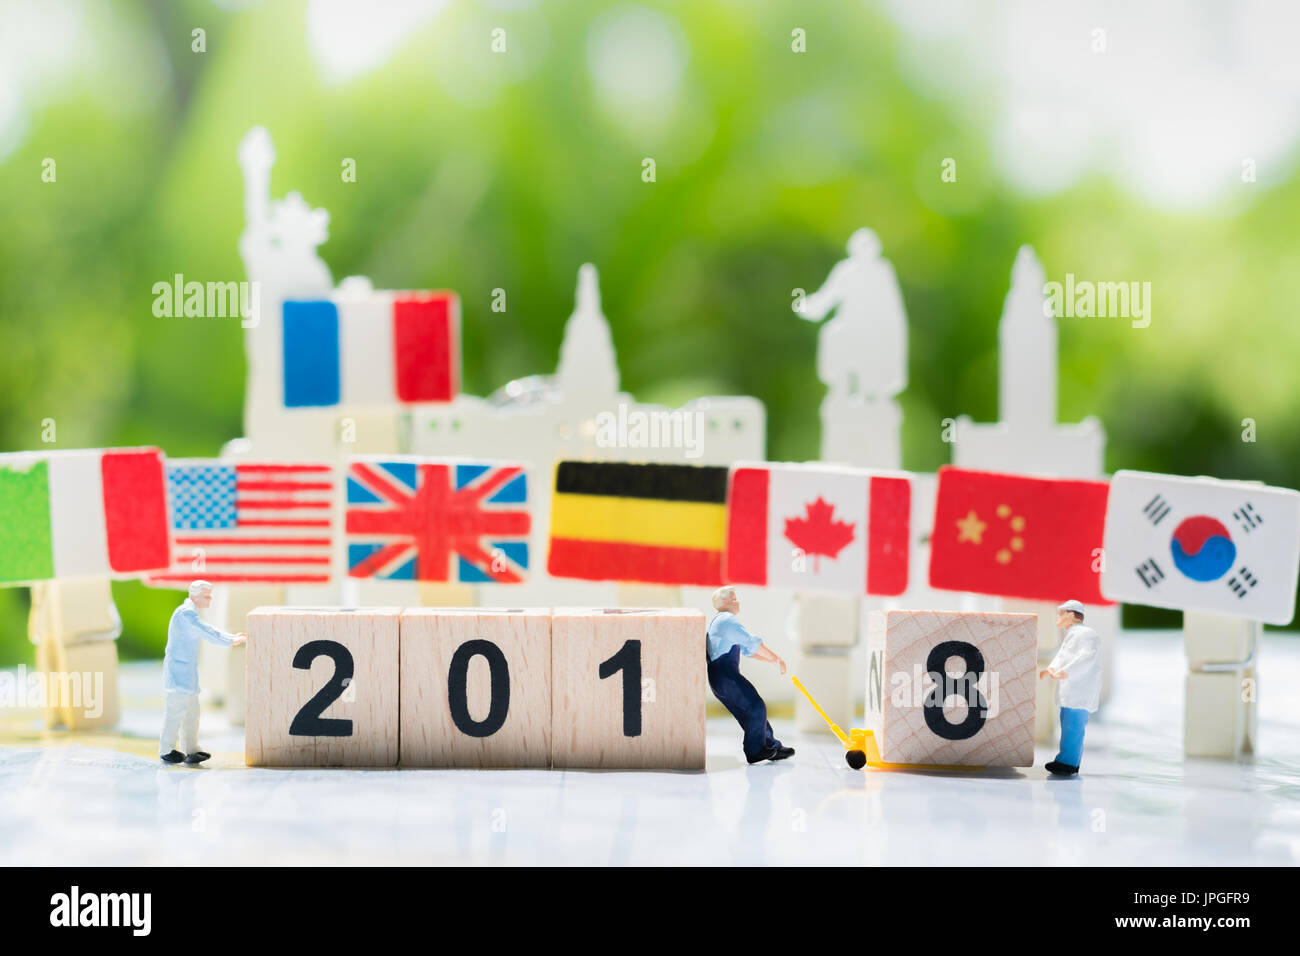 Workers are transfering or pulling a wooden number 8 to link with number 2018 with internation flags background using as happy new year 2018, teamwork - Stock Image